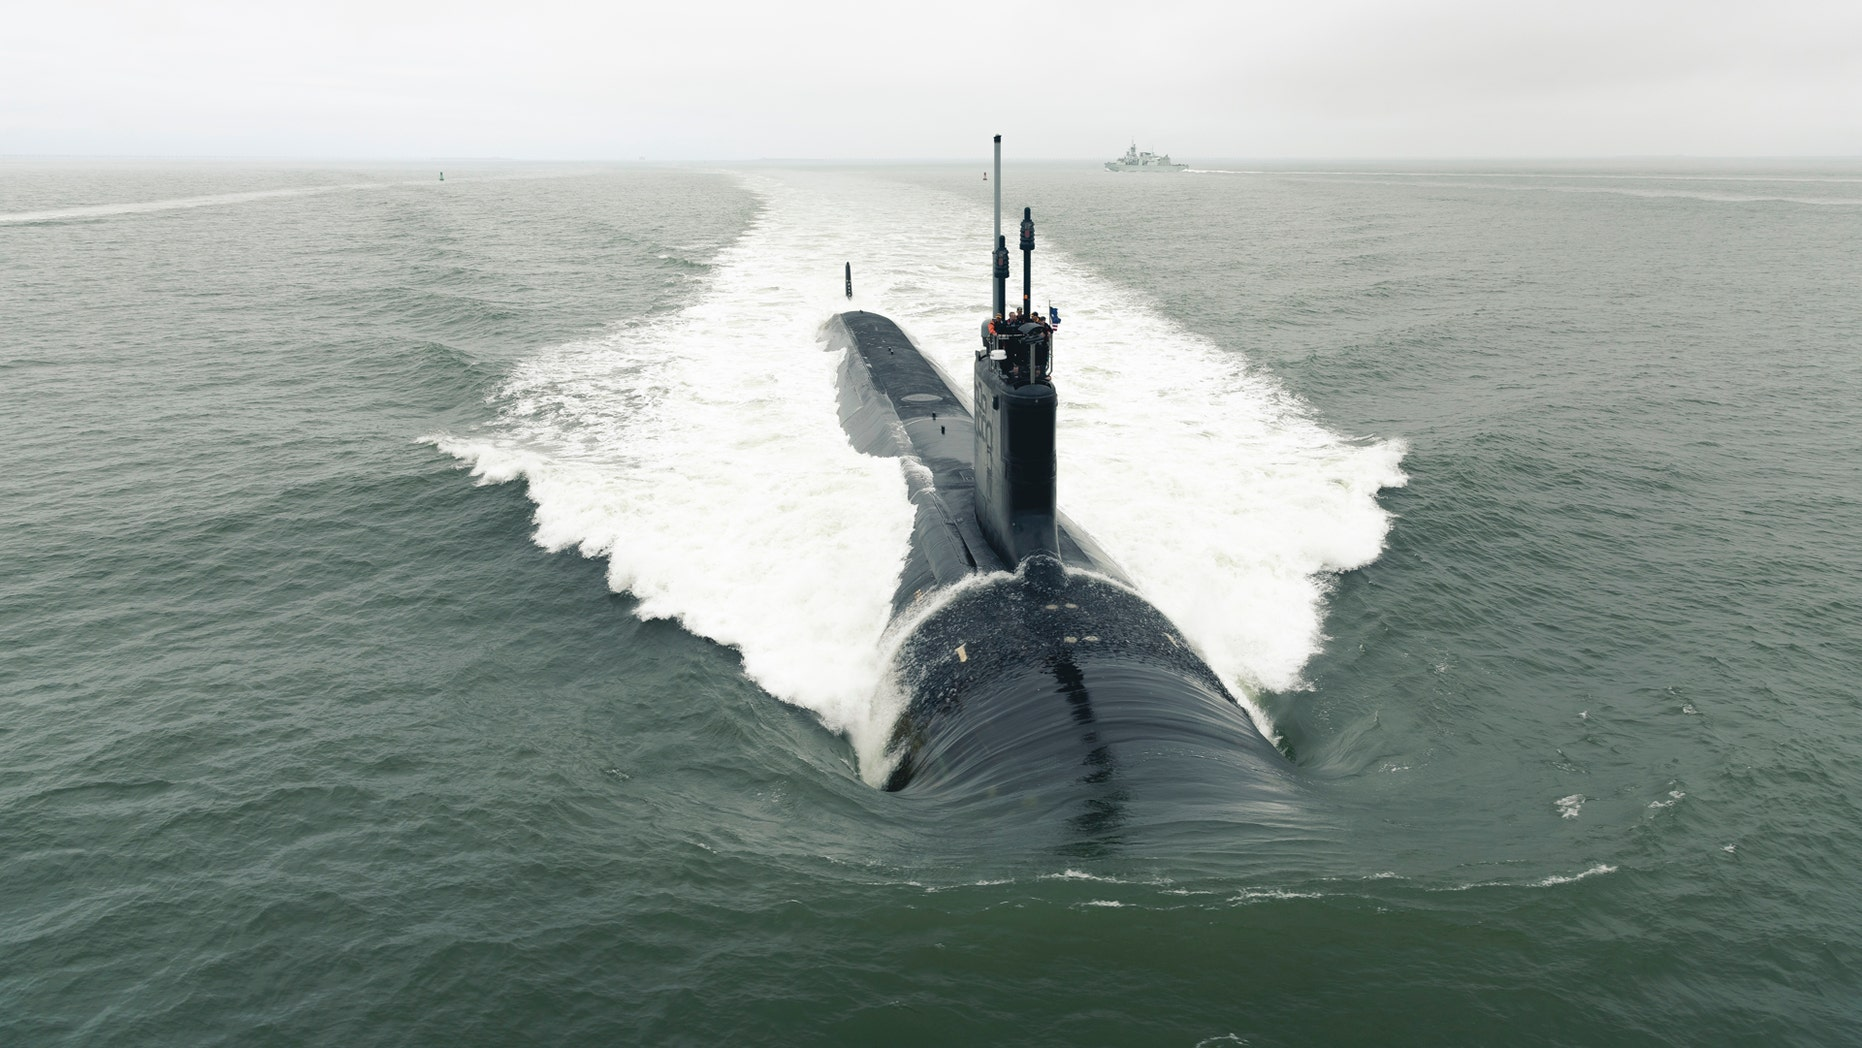 File photo - The Virginia-class attack submarine Pre-Commissioning Unit (PCU) Indiana (SSN 789) departs Newport News Shipbuilding to conduct Alpha sea trials in the Atlantic Ocean - May 22, 2018.